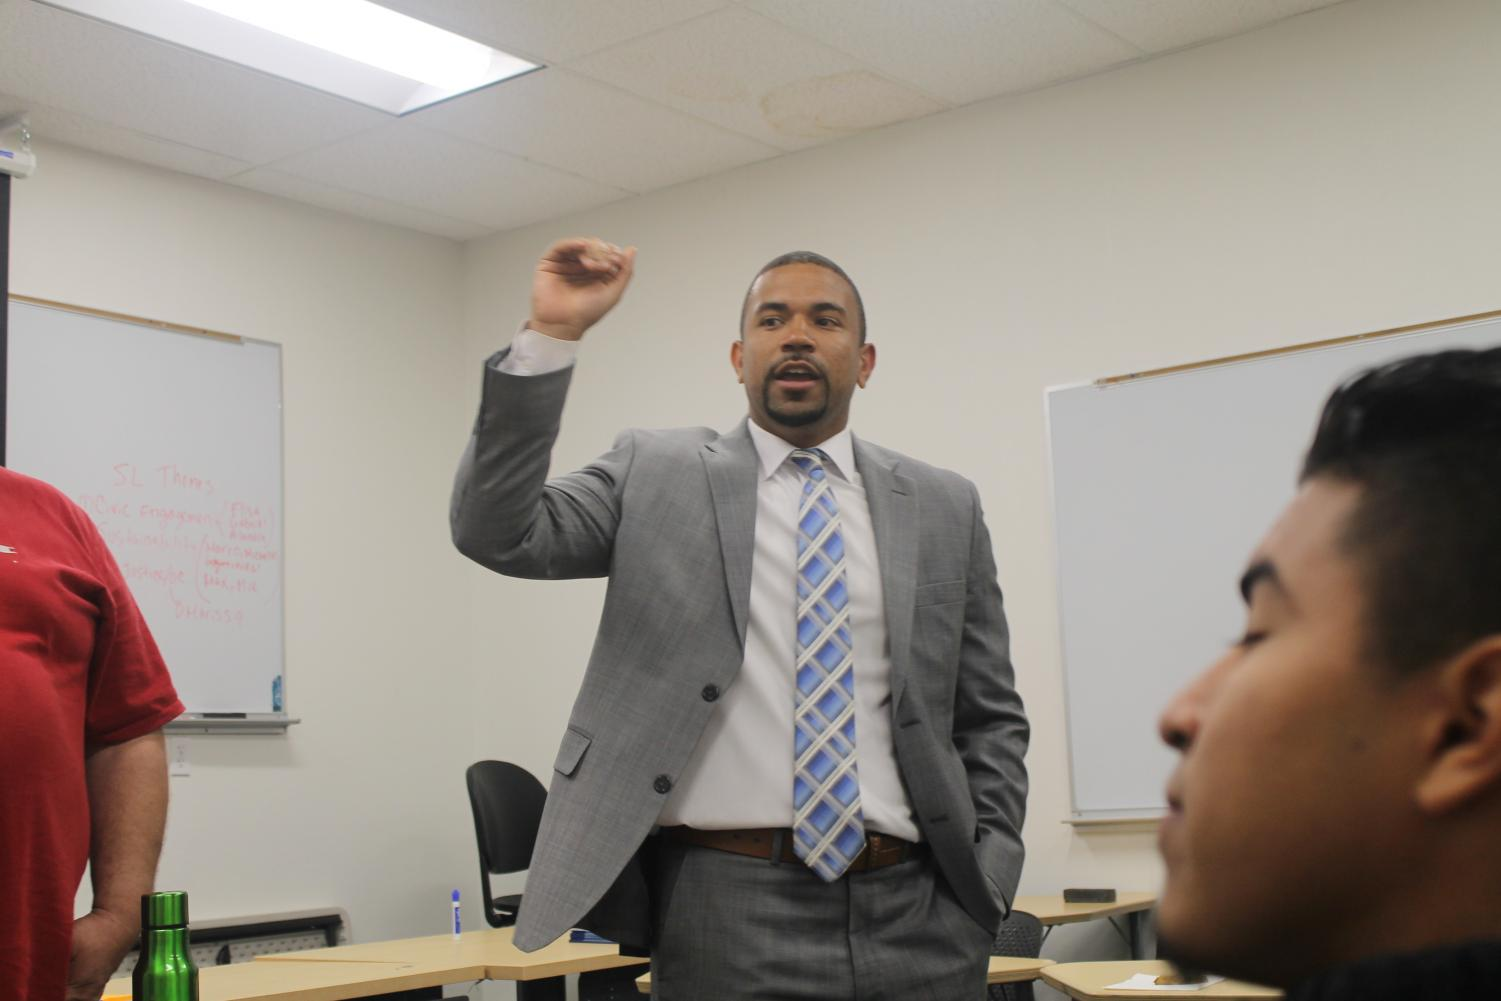 Matt Smith lecturing about toxic masculinity on April 5. EmpowerMENt is a workshop that explored the cultural concepts of: masculinity, identifying barriers people of color face when seeking to transcend the traditional expectations of men and ways to reduce sexism and misogyny.